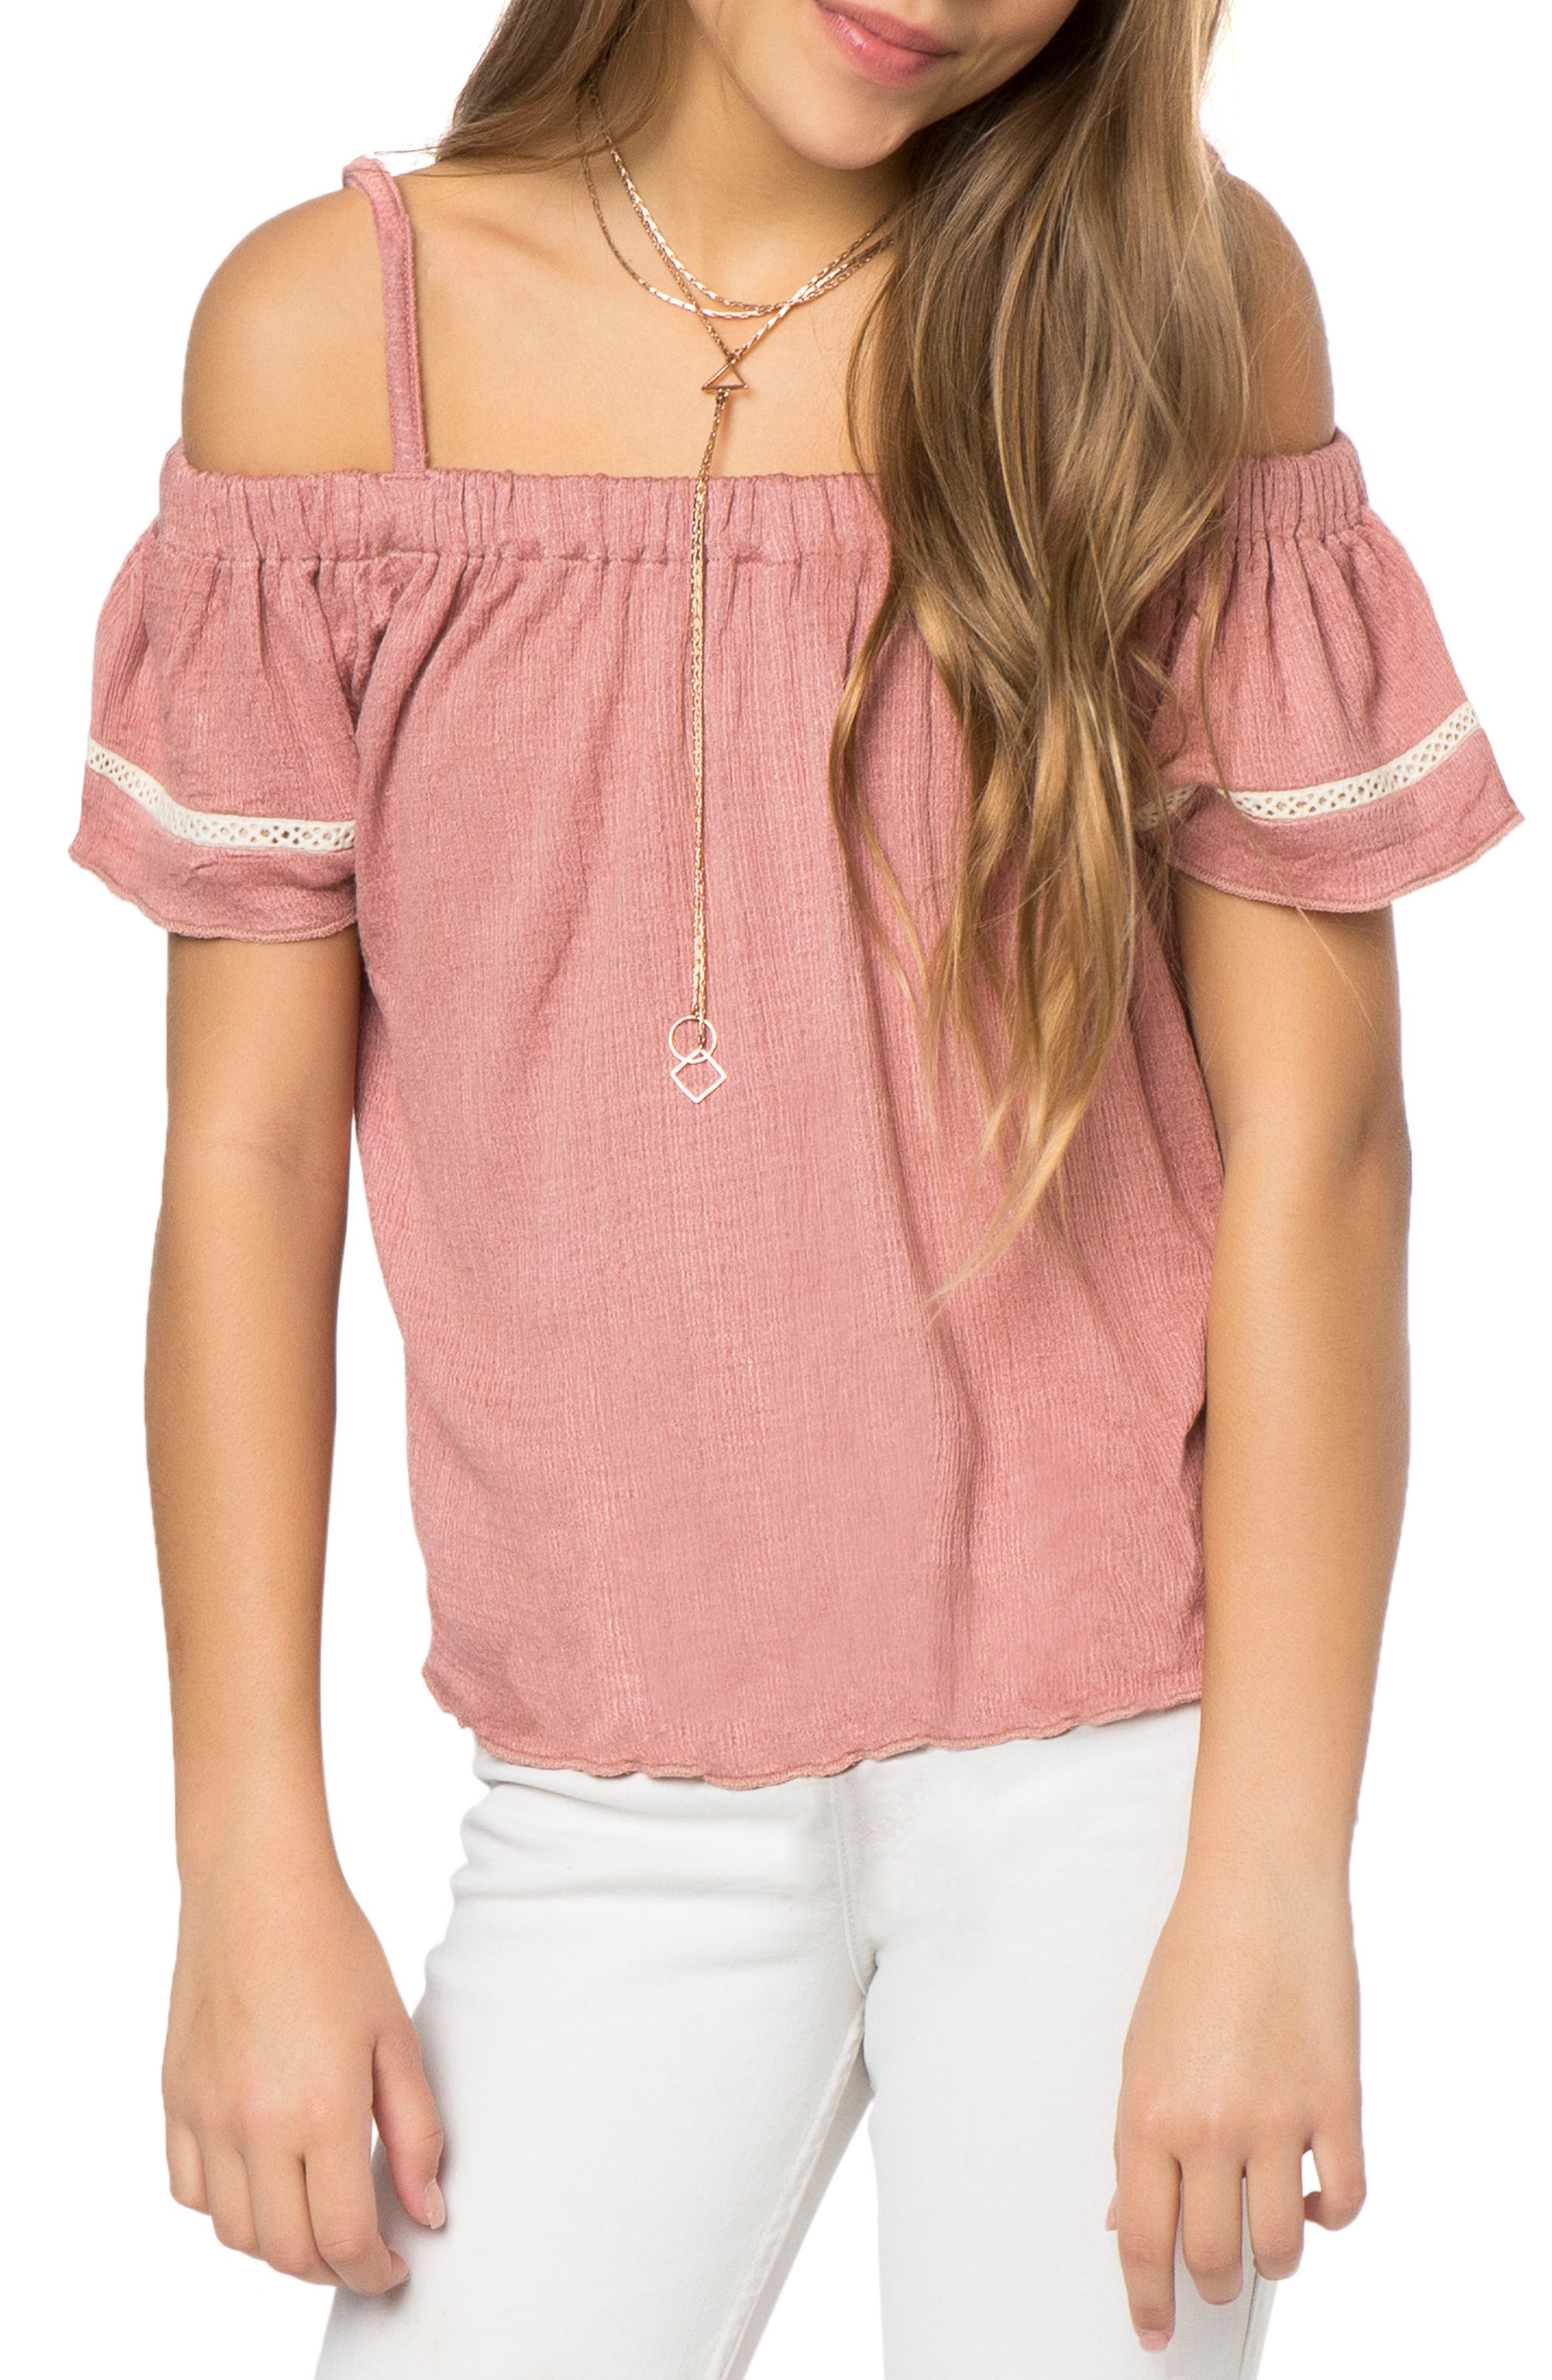 Alternate Image 1 Selected - O'Neill Rhonda Off the Shoulder Top (Big Girls)